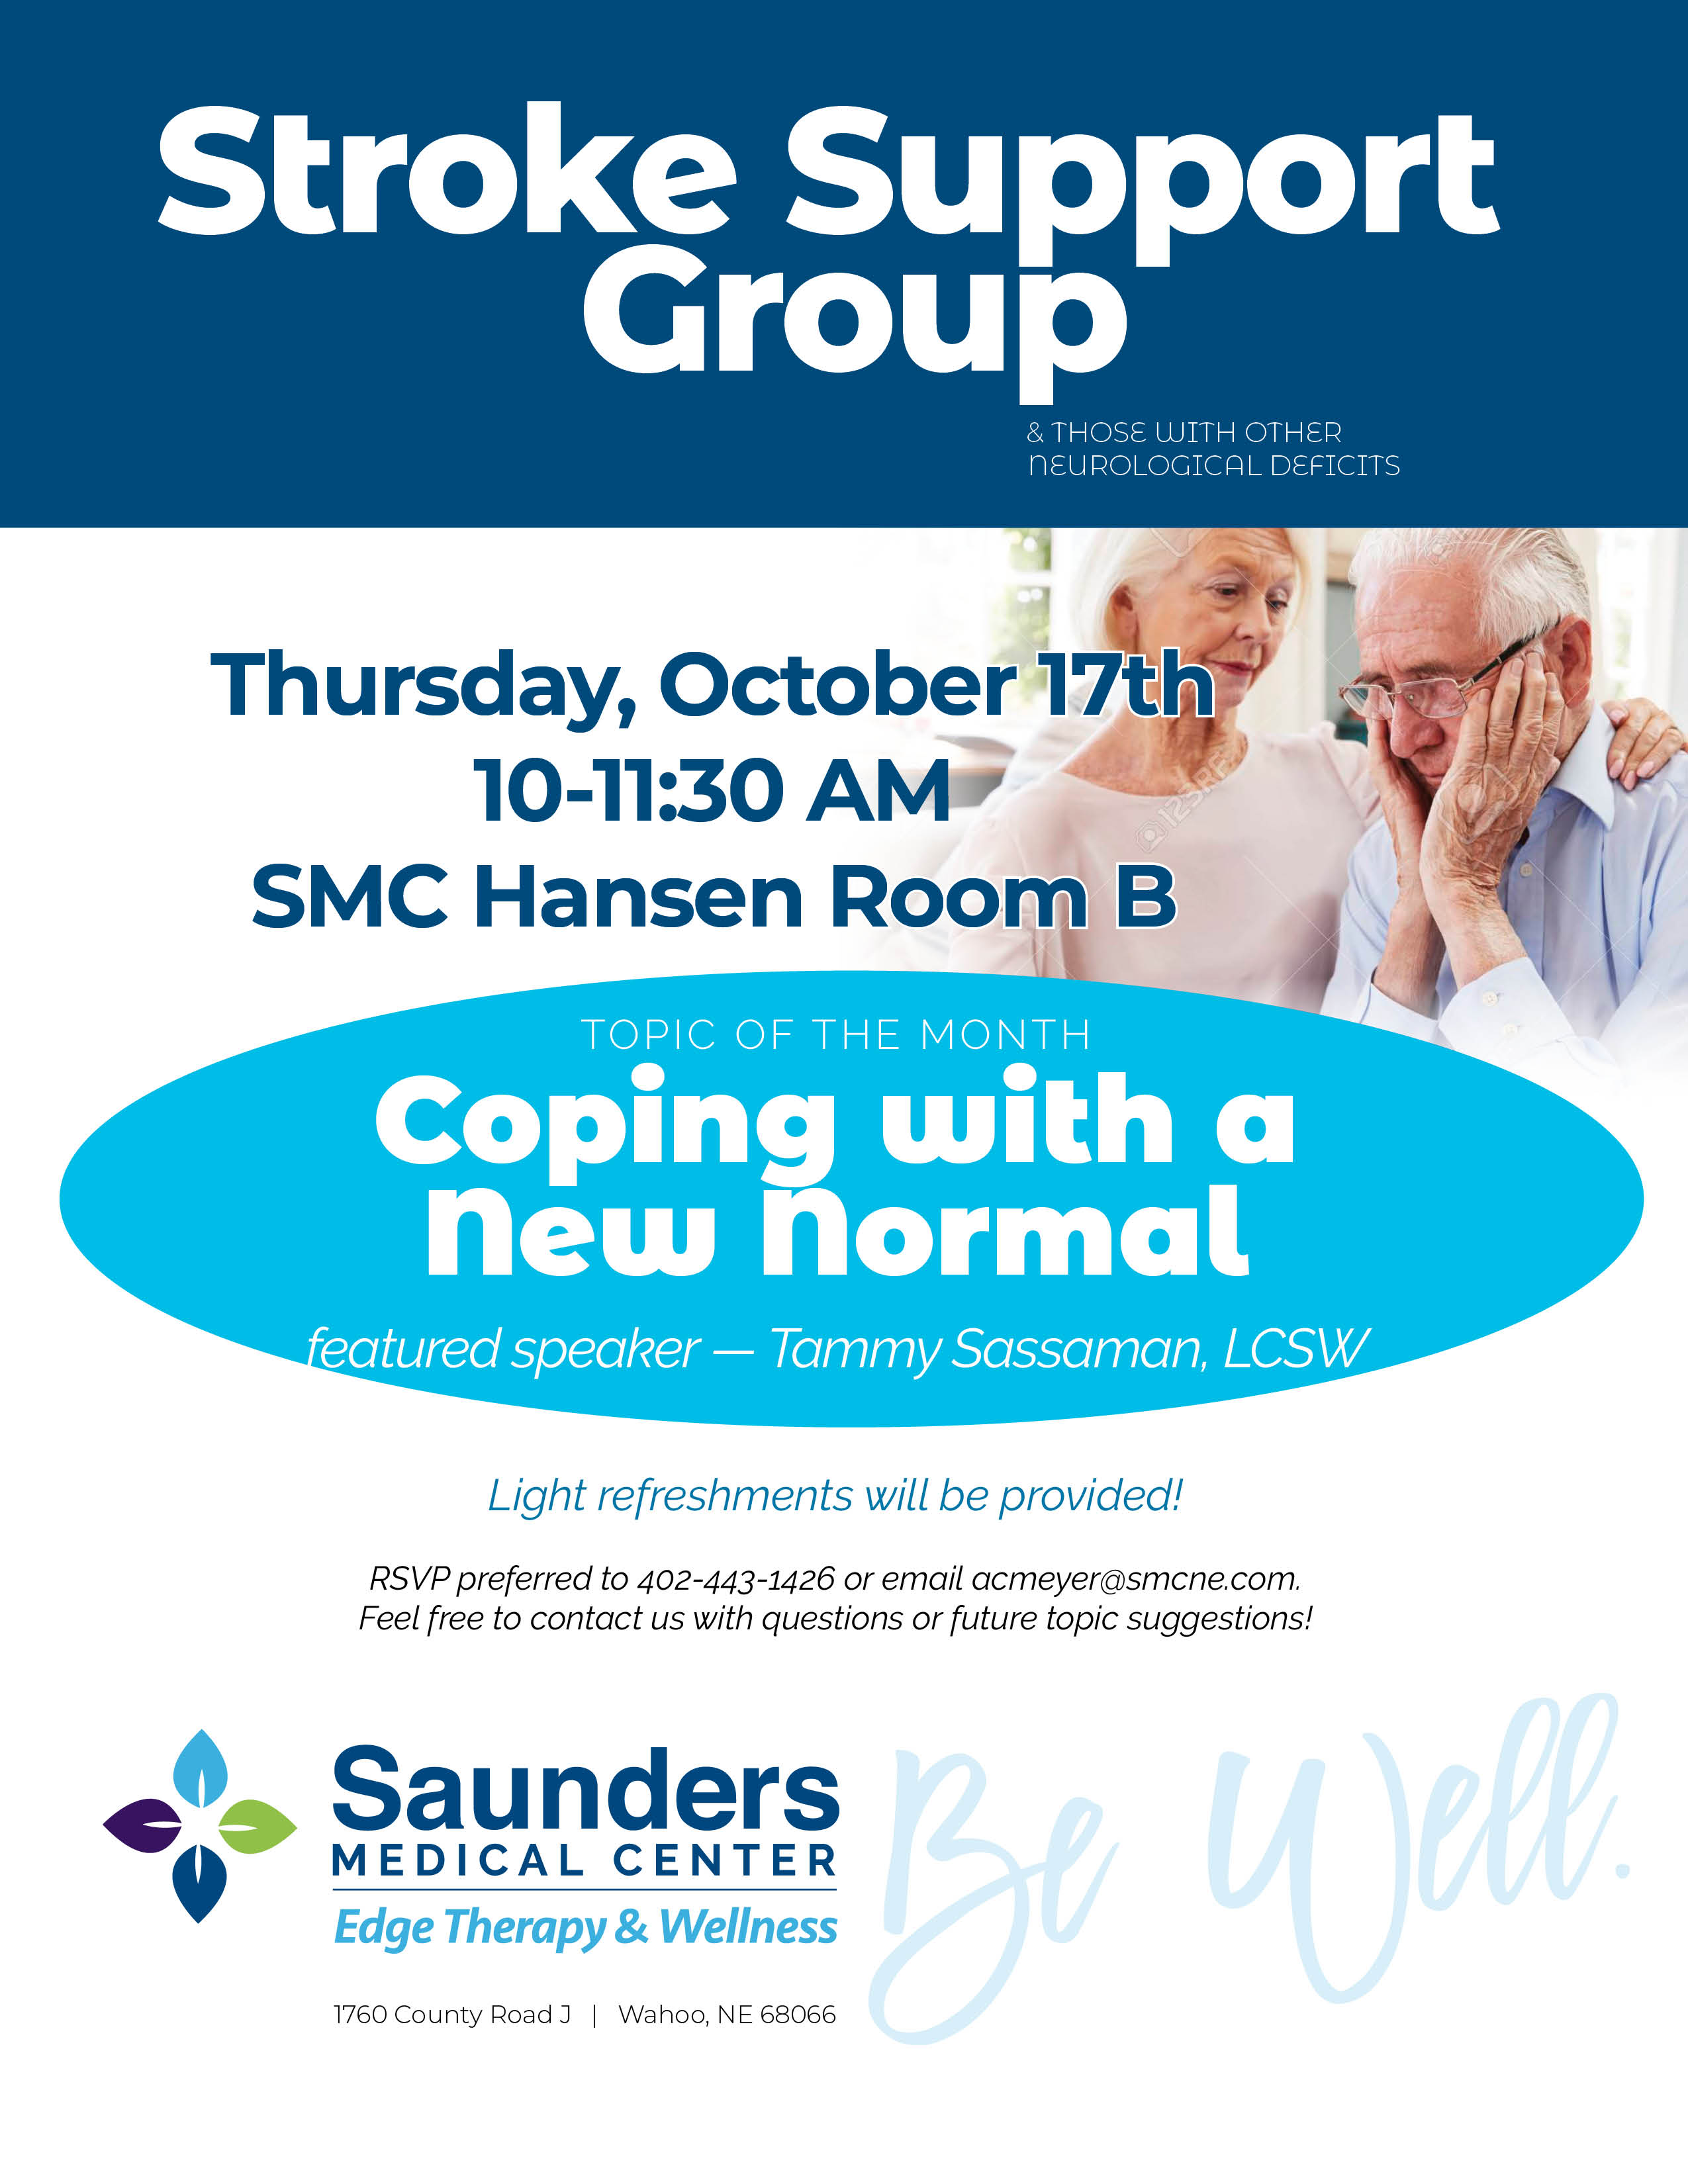 Stroke Support Group   Coping with a new normal   Featured speaker Tammy Sassaman, LCSW